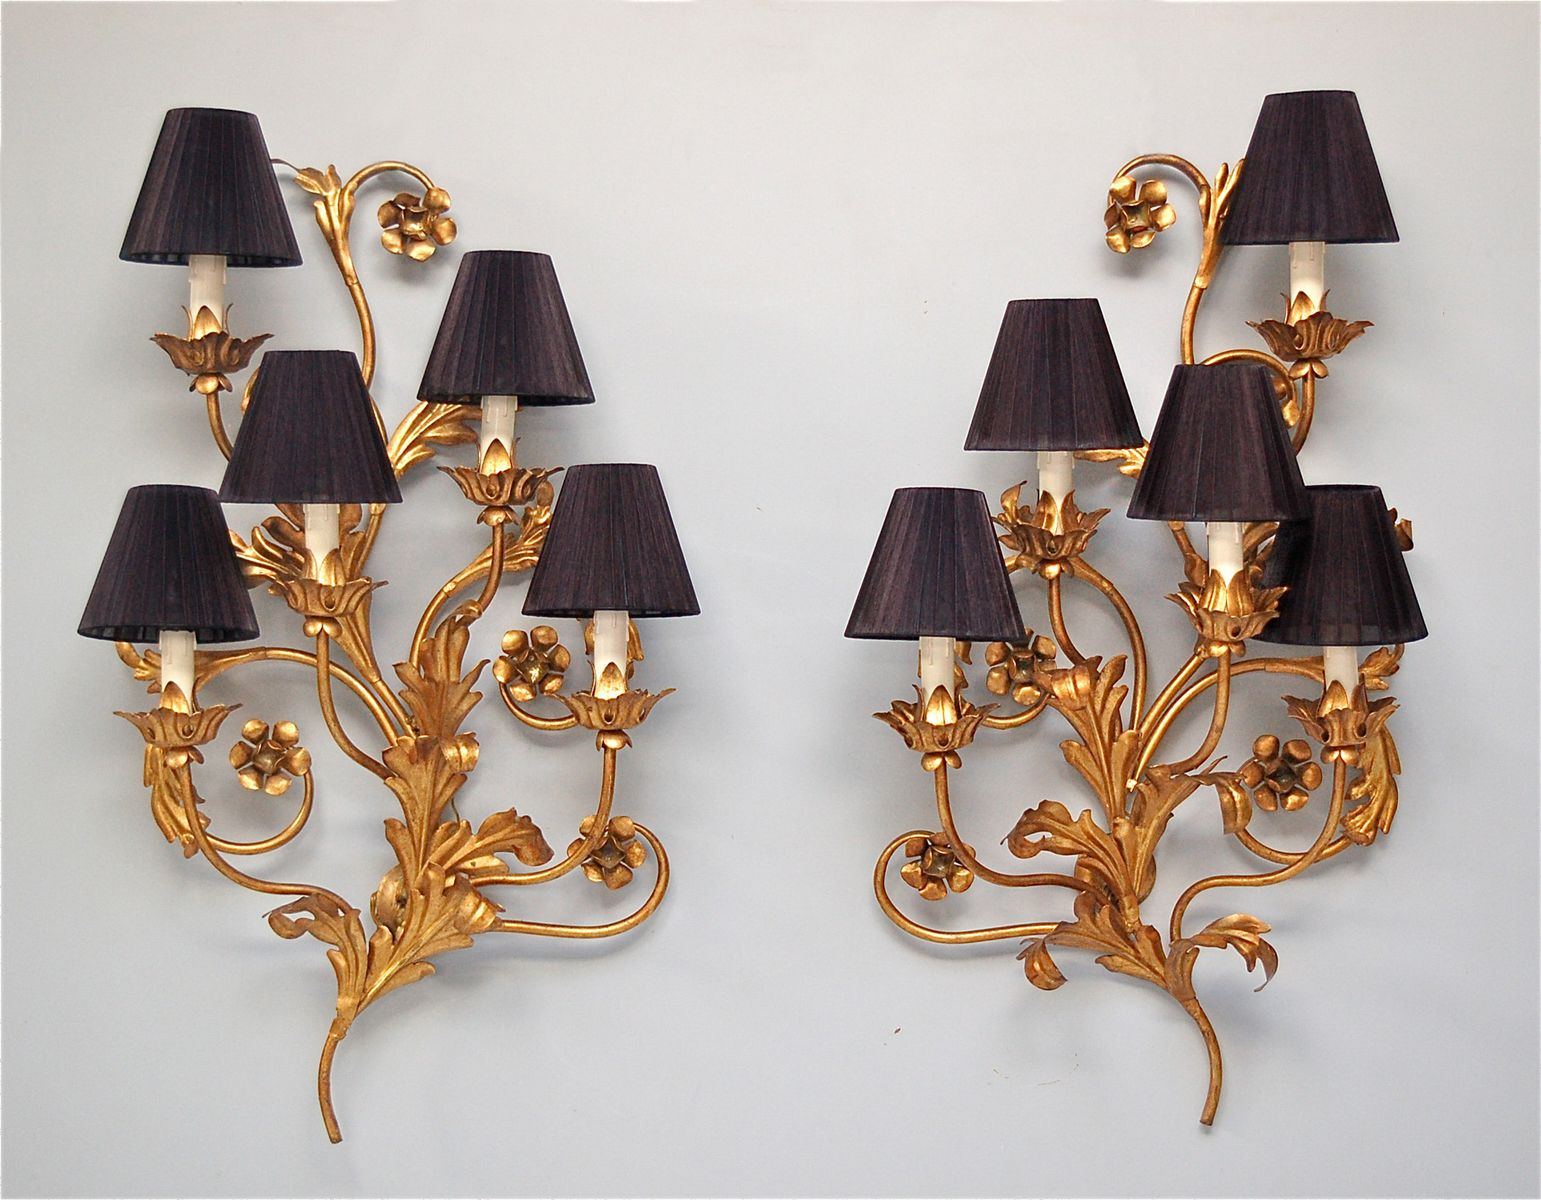 Wall Sconce Faux Candle : Large Italian Faux Candle Wall Sconces with Floral Details, Set of 2 for sale at Pamono